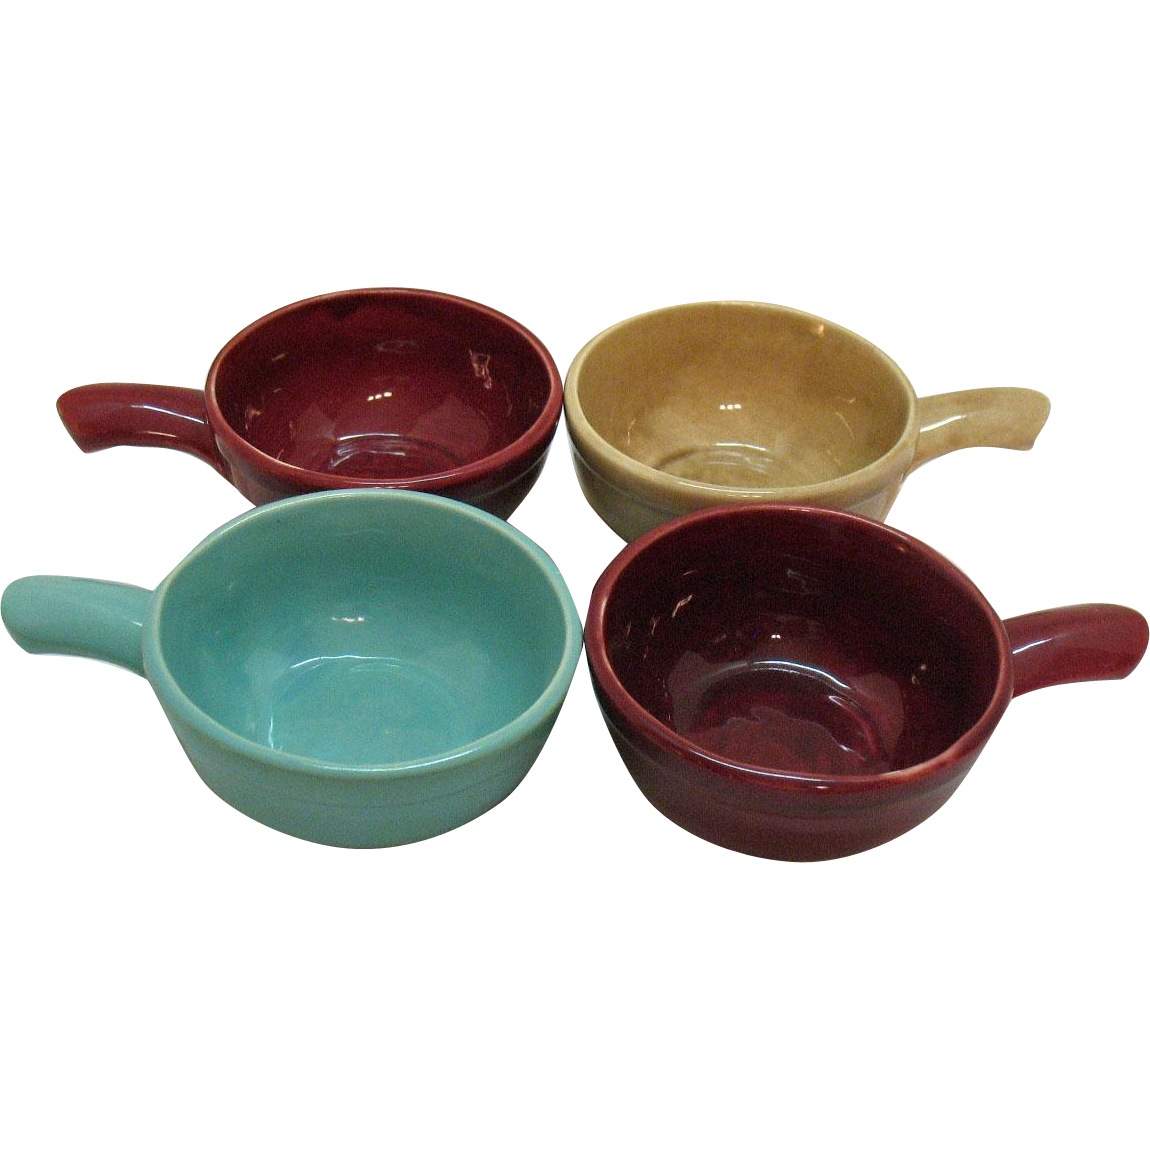 Vintage Heinz Advertising Pottery Soup Bowls by McCoy 1940s Very Good Condition